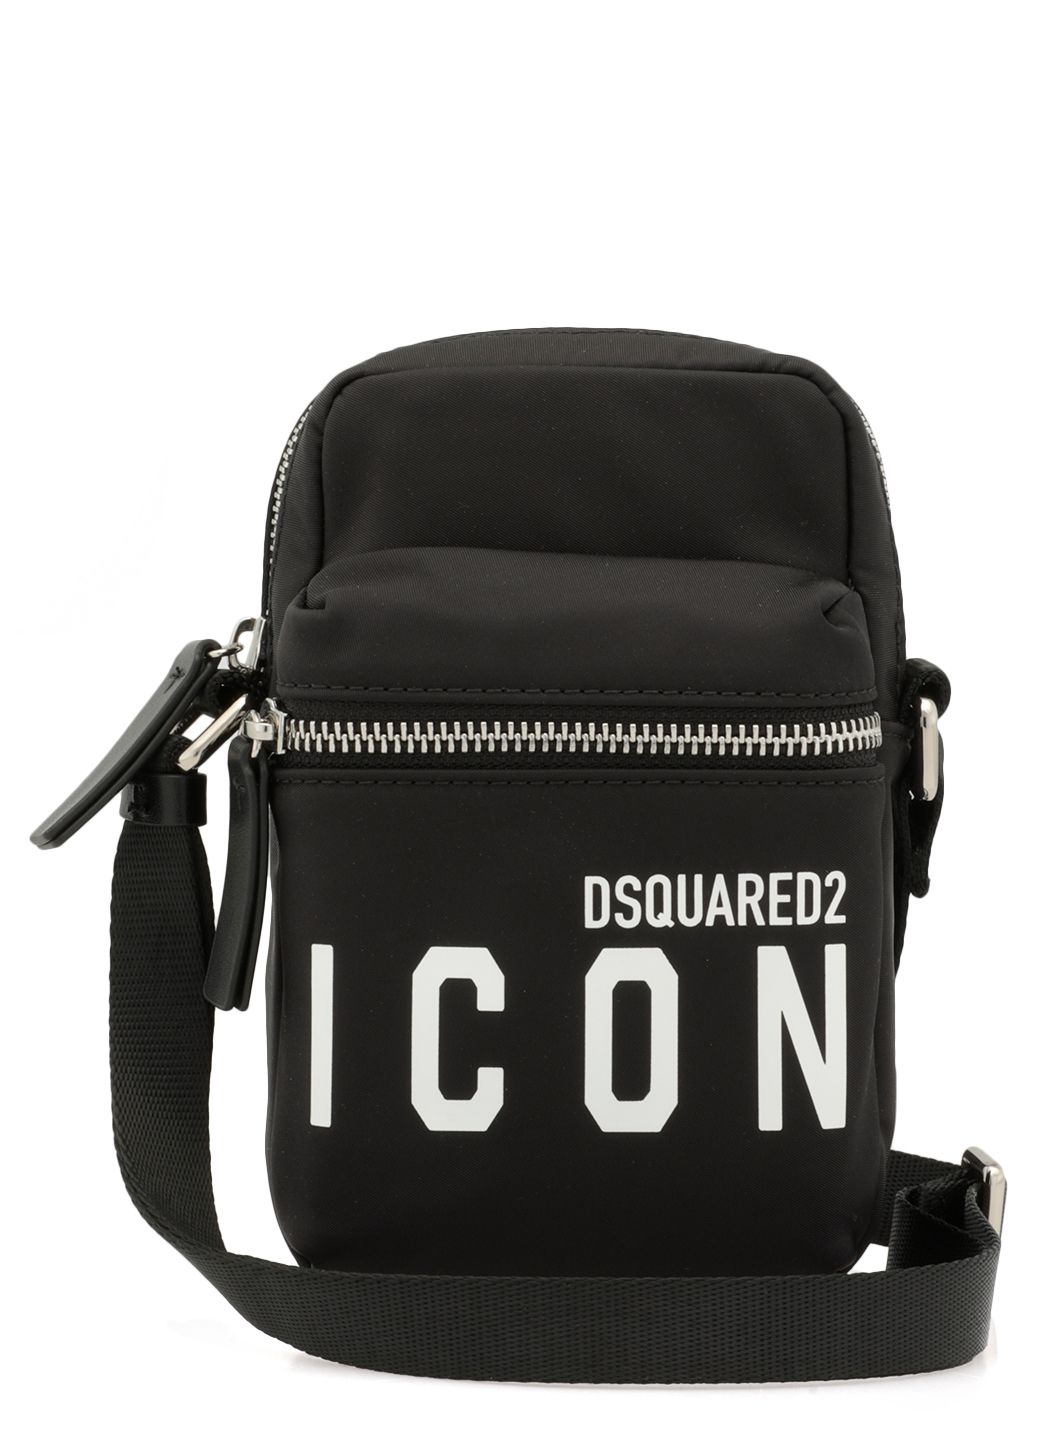 Icon crossbody bag